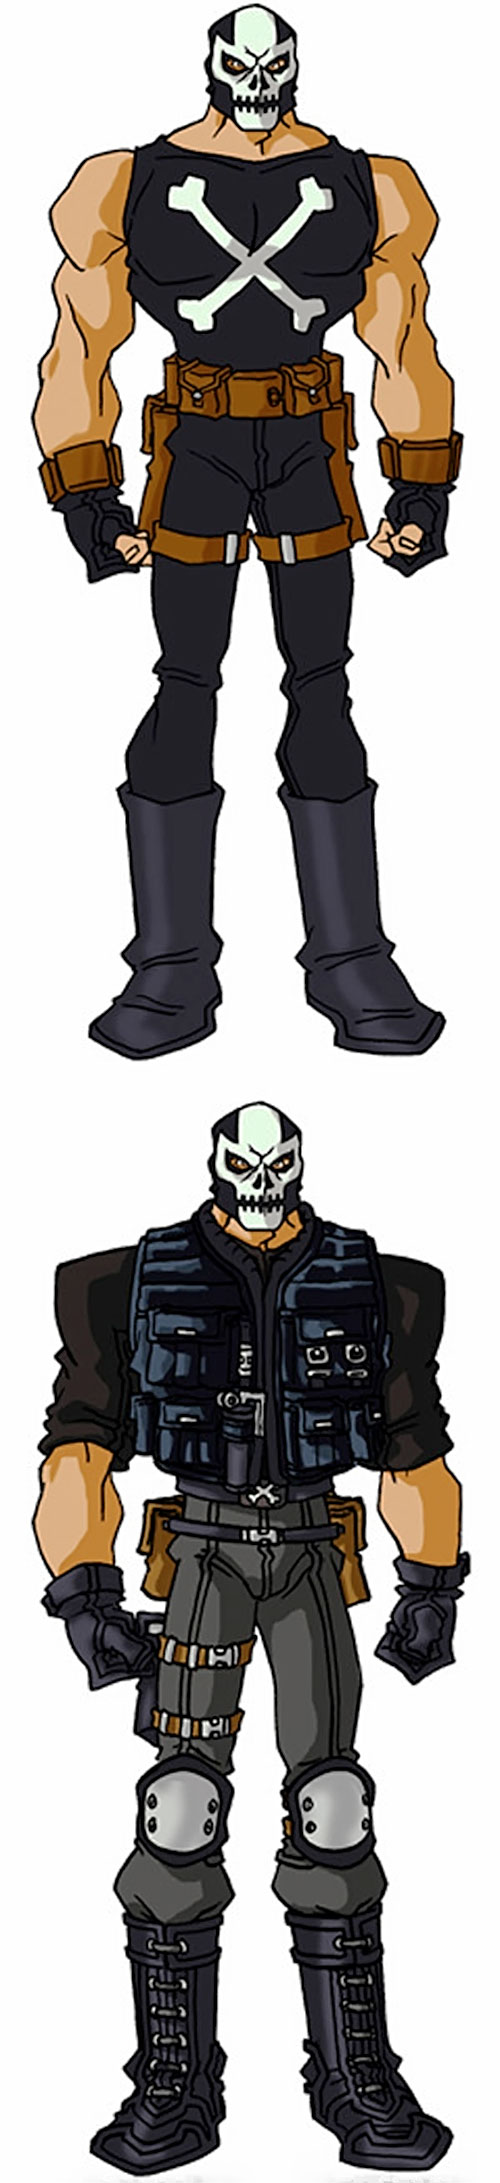 Crossbones (Marvel Comics) (Captain America enemy) by RonnieThunderbolts